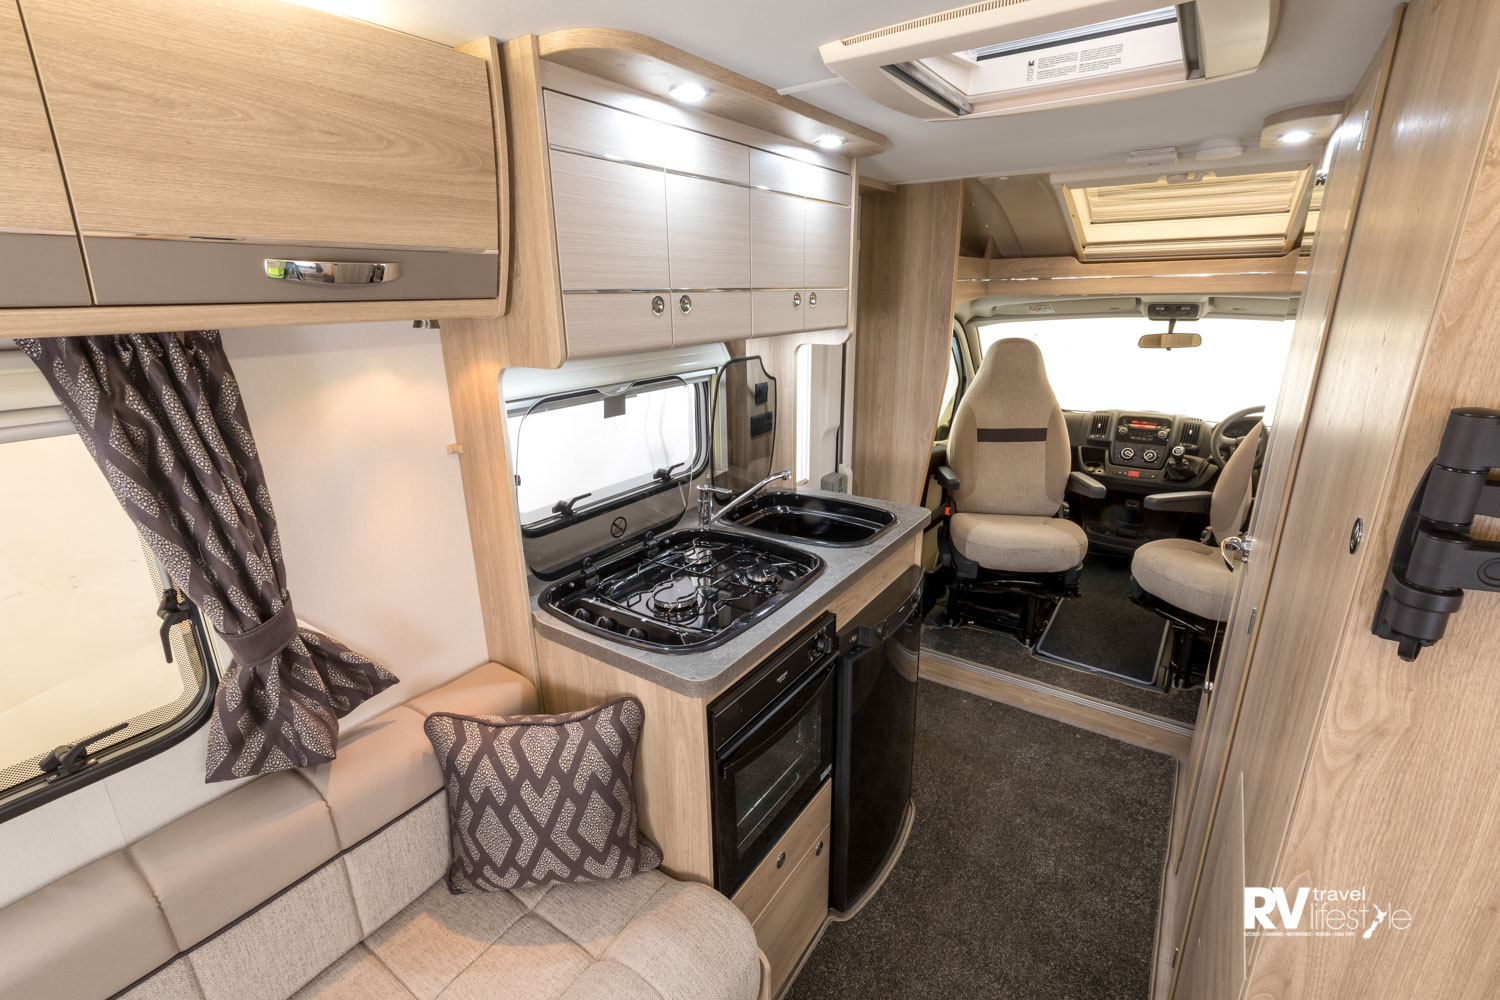 The interior of the Accordo comprises the expected Elddis finish and features